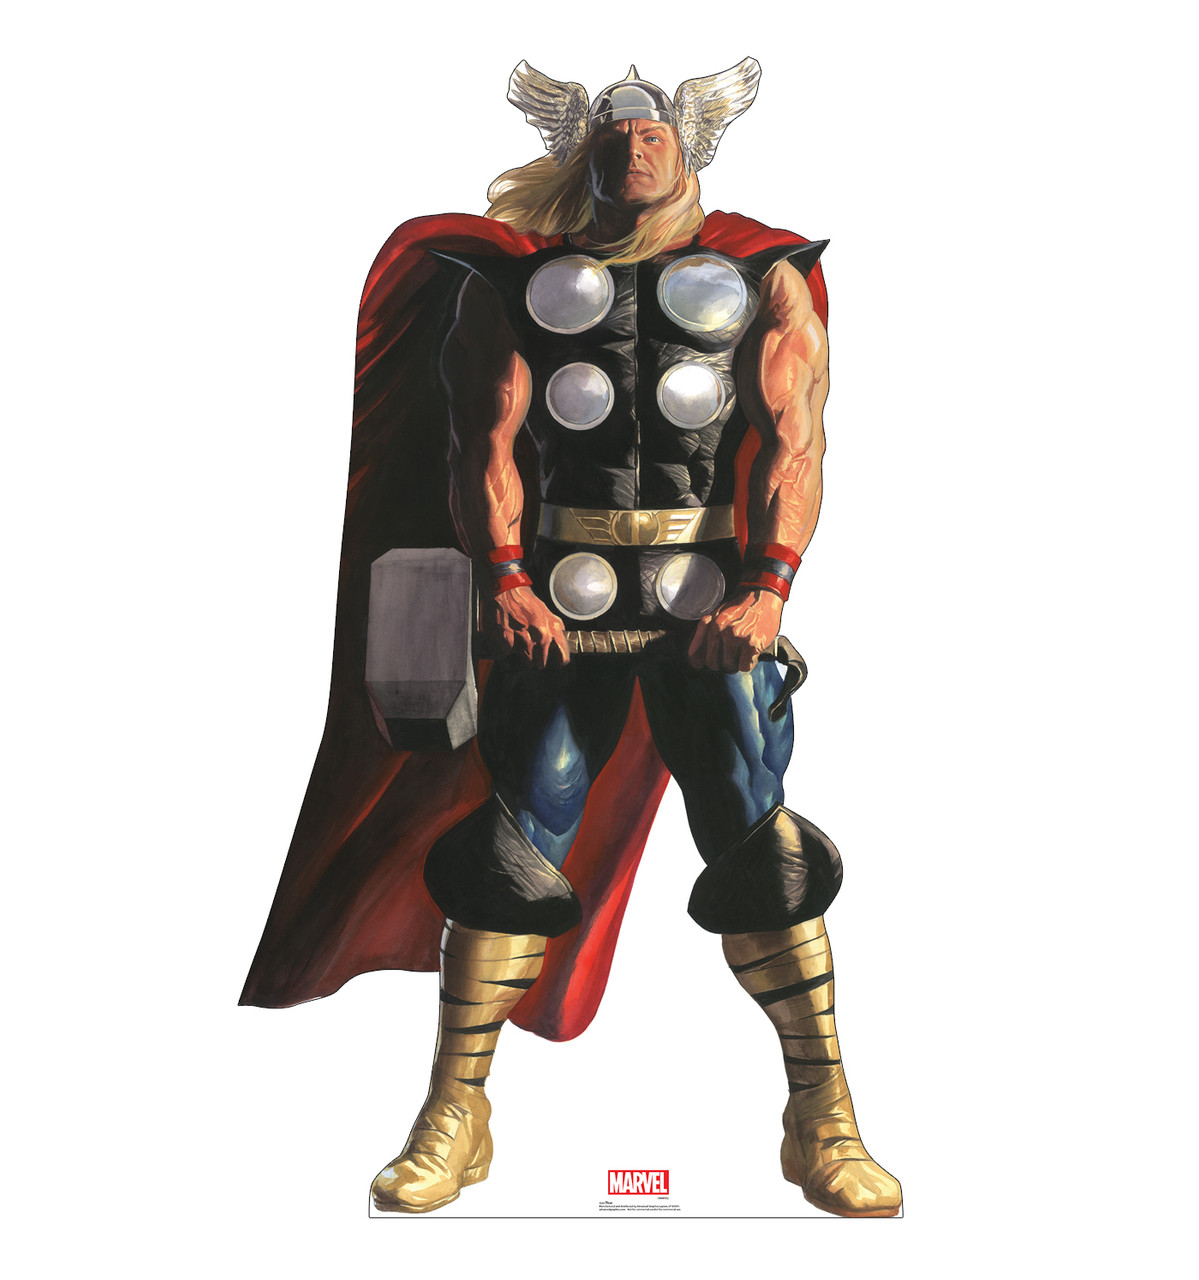 Life-size cardboard standee of Thor from Marvels Timeless Collection.